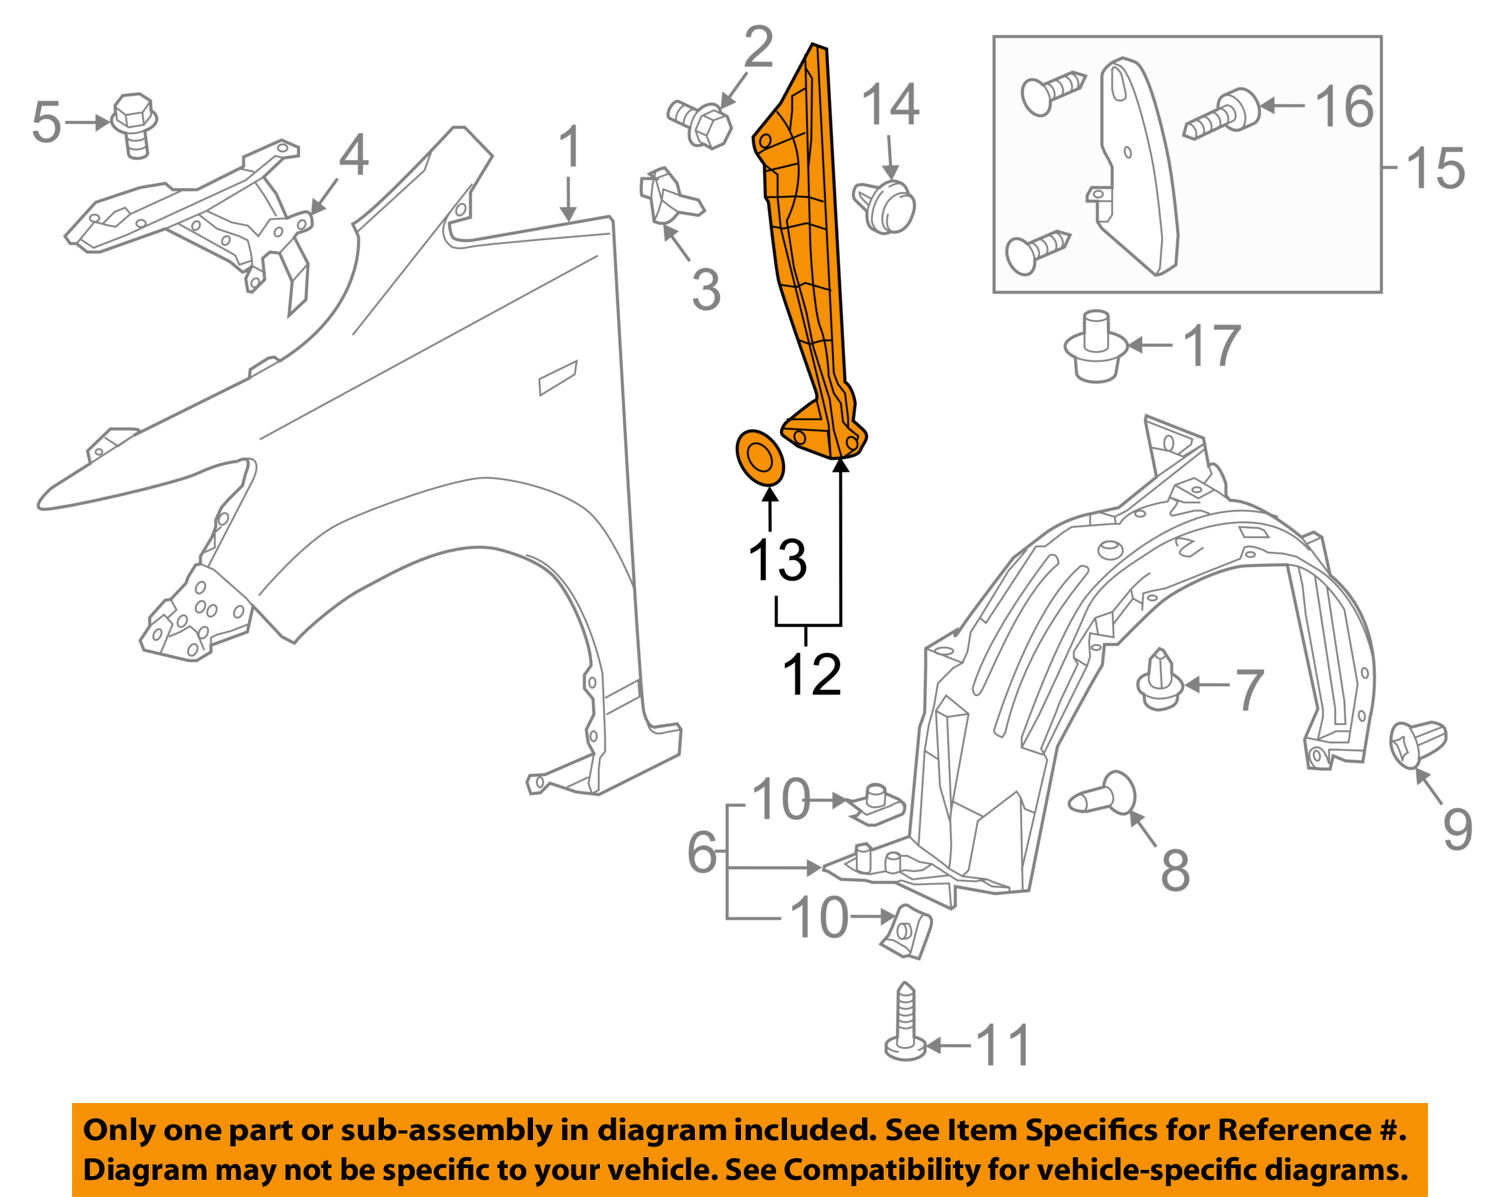 Honda Oem 2015 Fit Fender Rear Seal Right 74105t5a000 Ebay Diagram Picture 1 Of 2